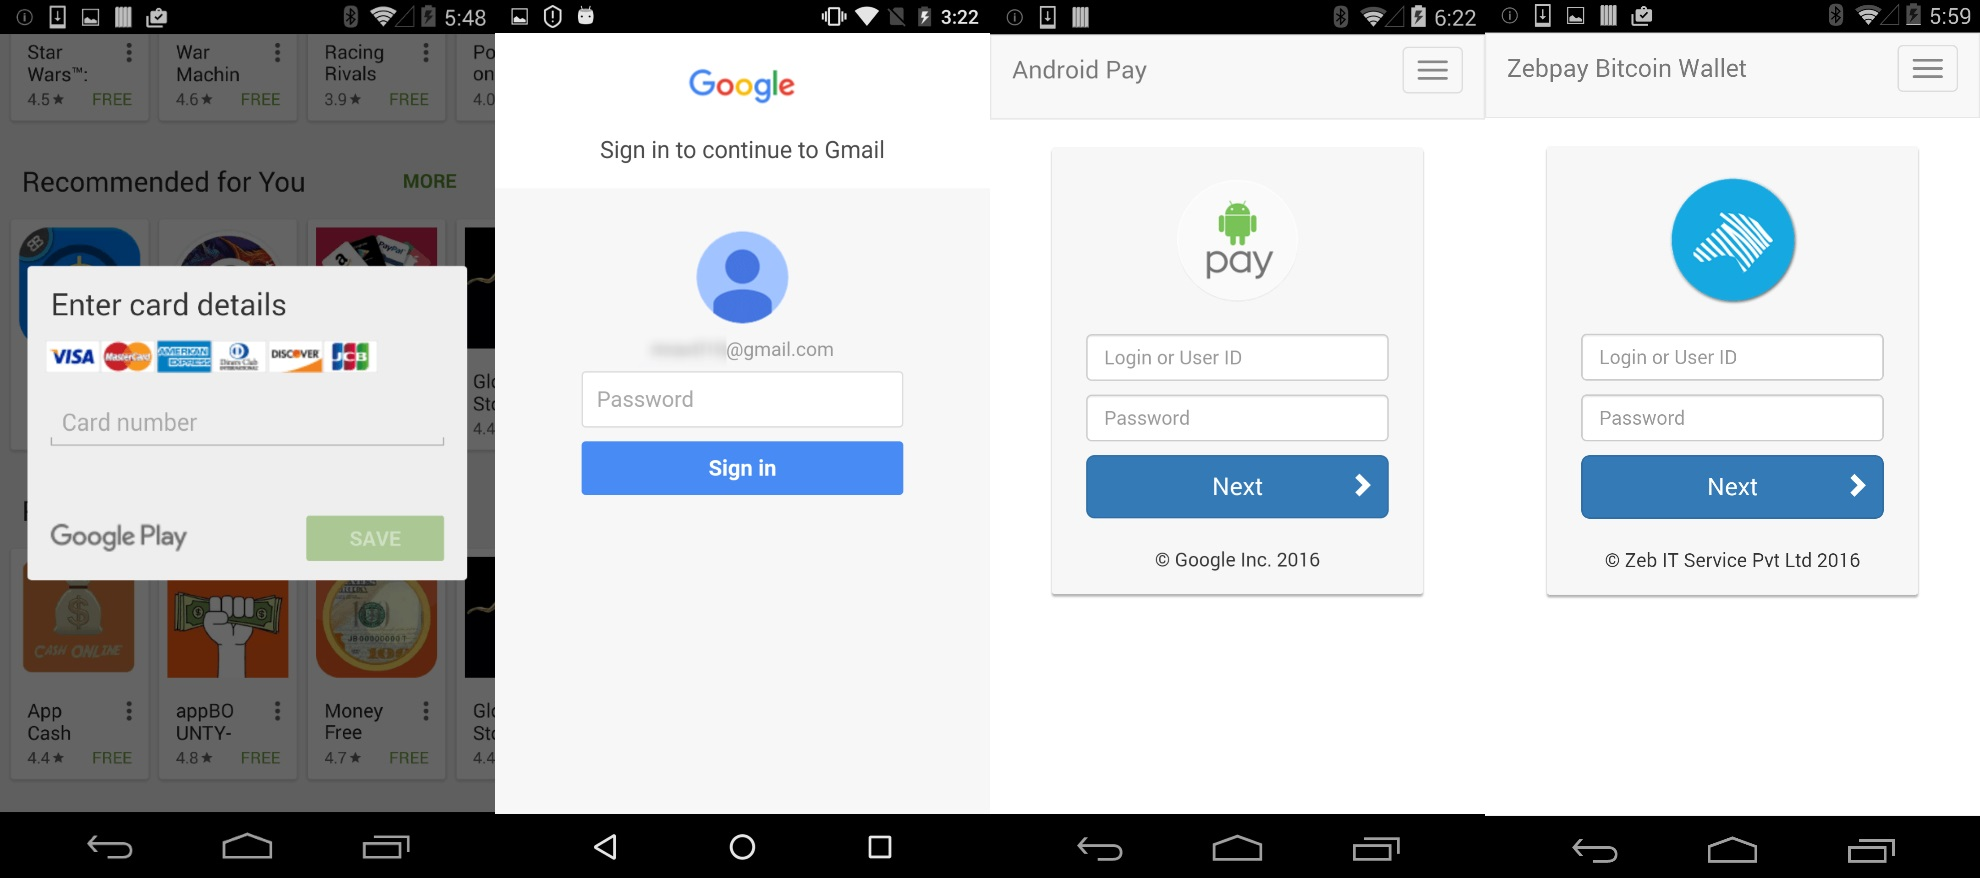 Phishing screens showed by Faketoken Android banking trojan